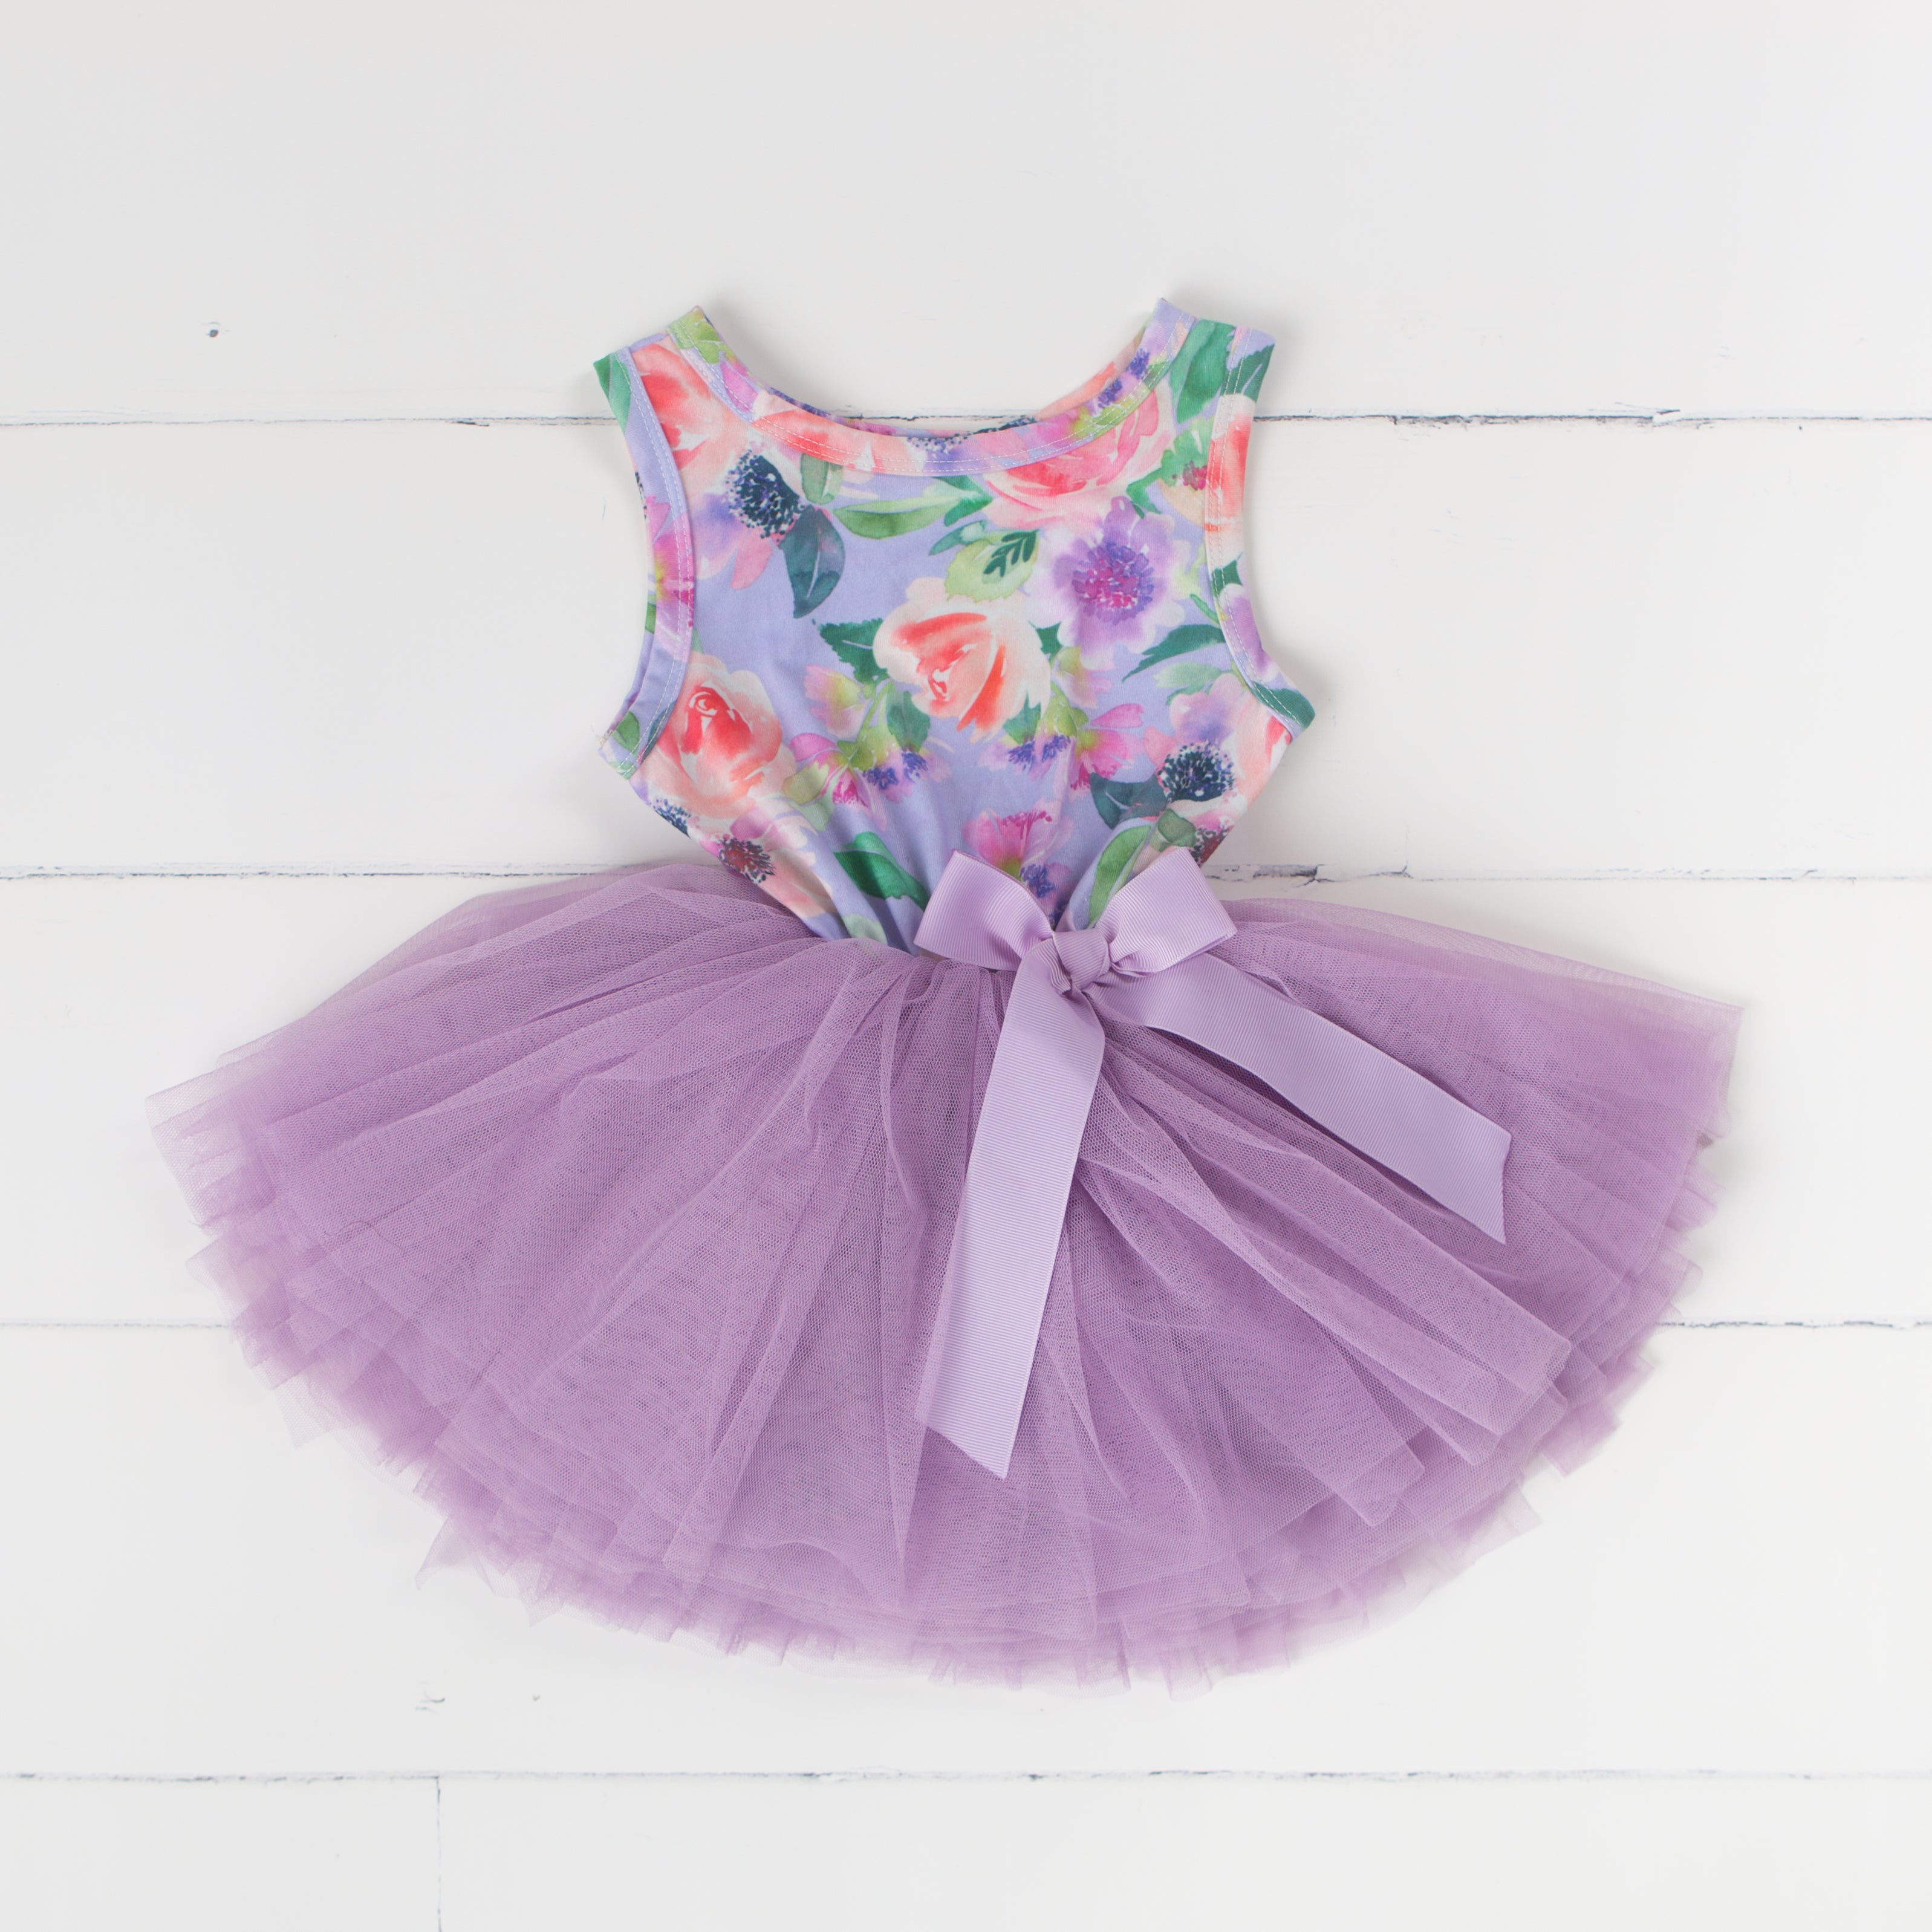 Party Outfit Lavender Floral Sleeveless Tutu Dress